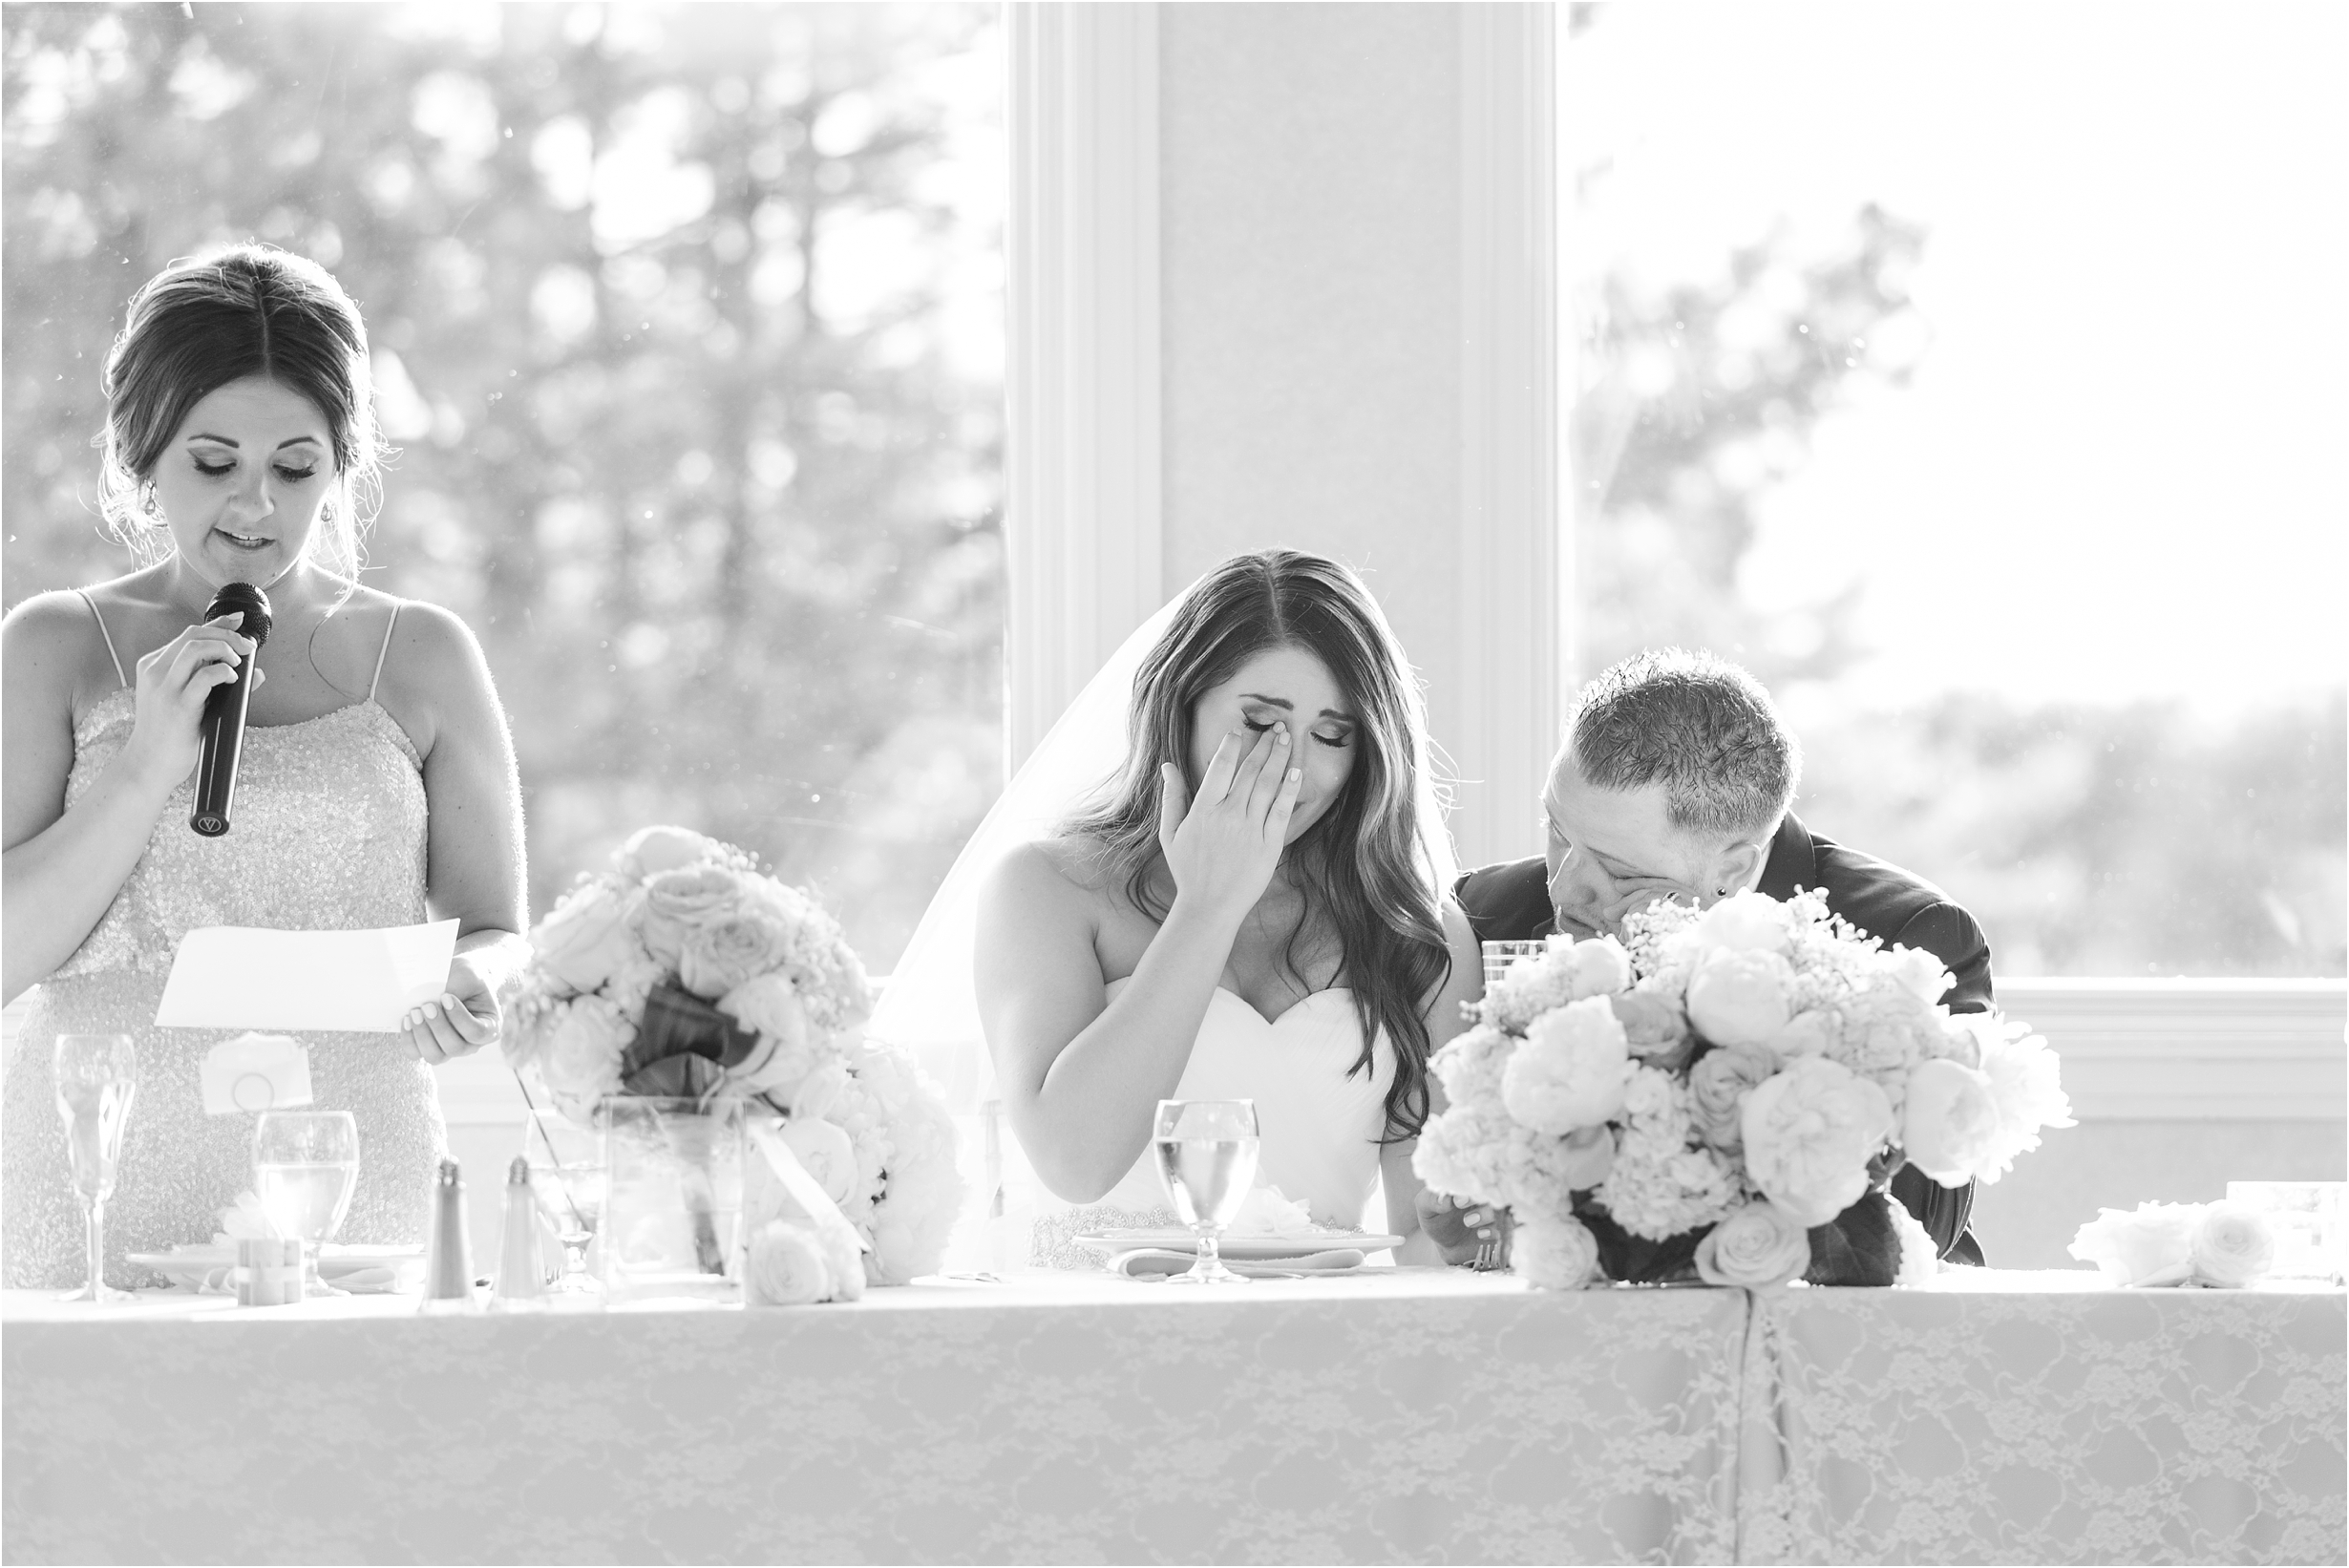 best-of-2016-wedding-photos-with-courtney-carolyn-photography-romantic-timeless-candid-wedding-photographer-in-detroit-mi_0022.jpg